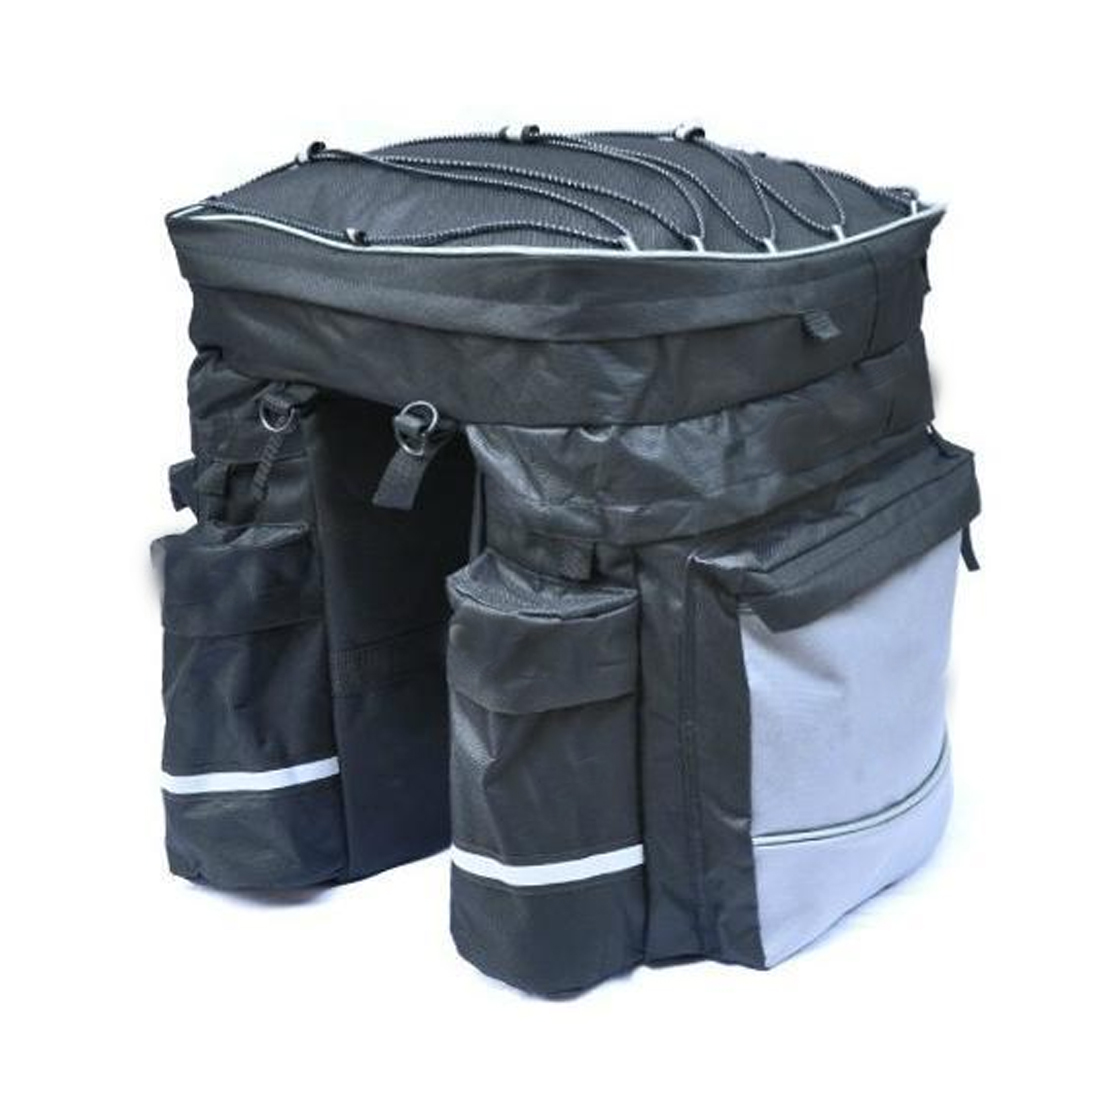 Waterproof Bicycle Bag Panniers Double Side Rear Rack Tail <font><b>Seat</b></font> Trunk Bag Pannier with <font><b>Rain</b></font> Cover Bike Bags Bicycle Accessories